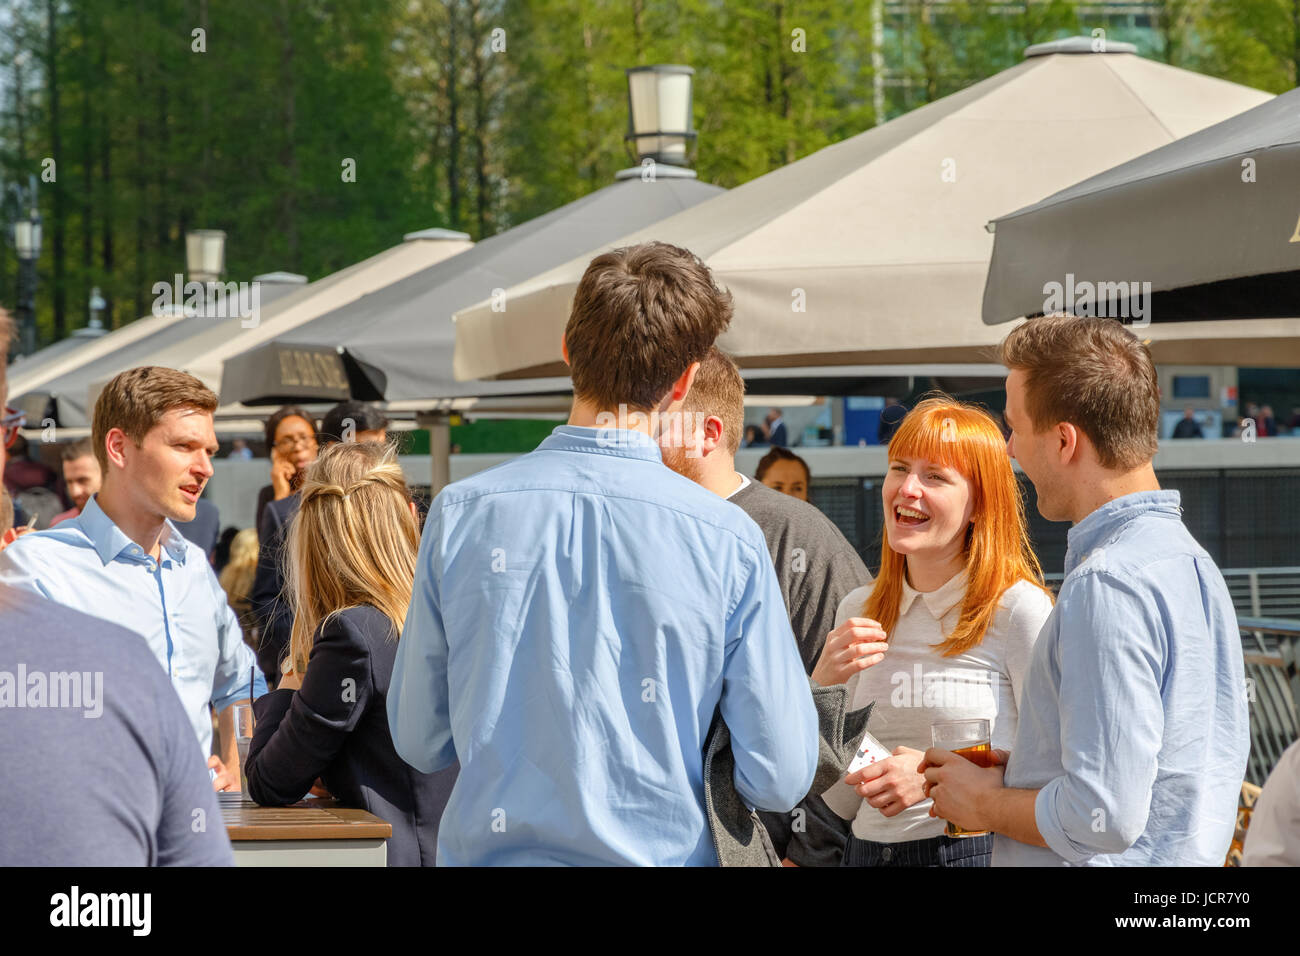 London, UK - May 10, 2017 - A young businesswoman drinking with her colleagues at a packed outdoor bar in Canary - Stock Image